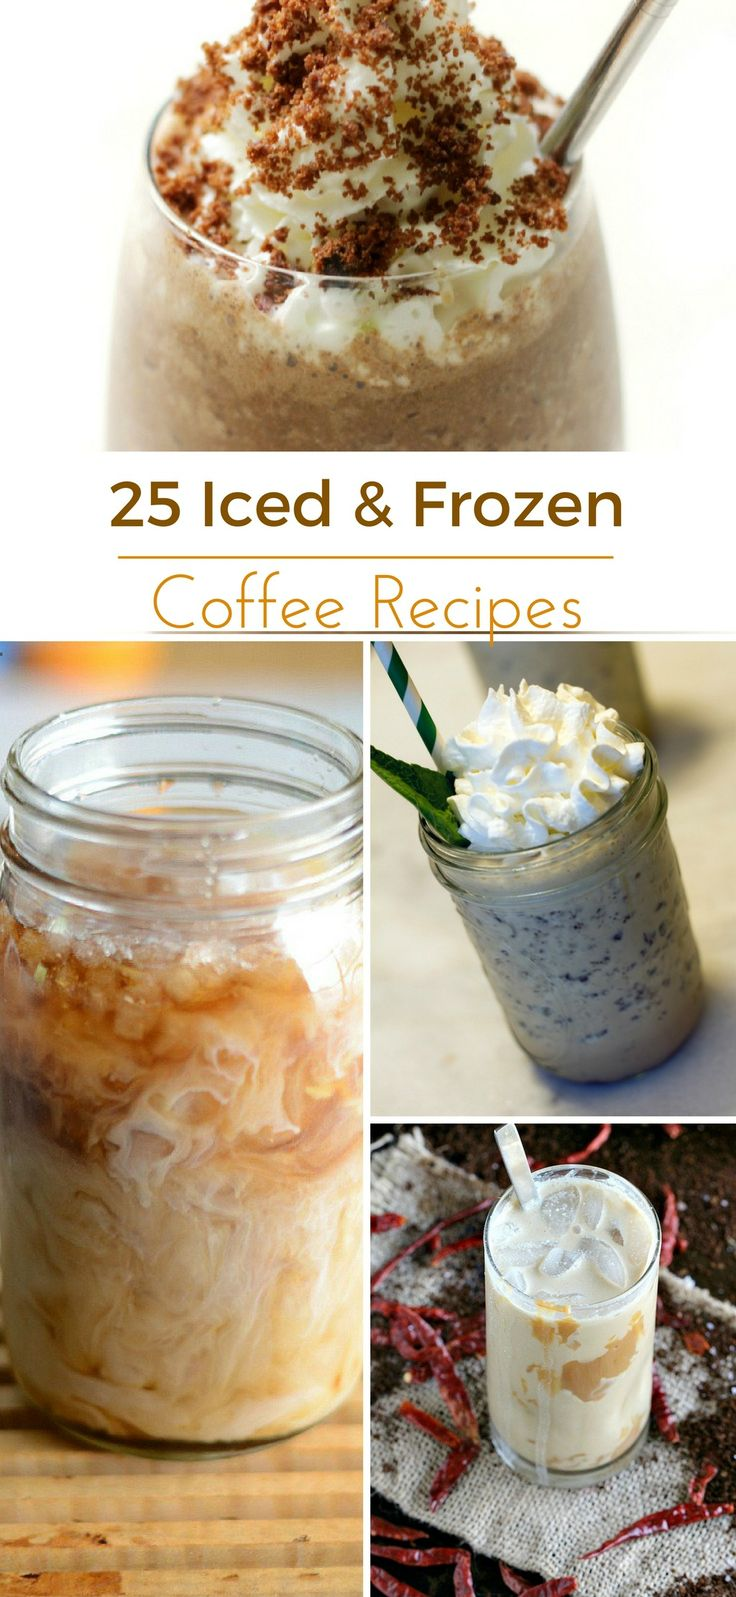 Coffee Drink Recipes - Coffee that's good enough to weeny.tker New Flavors· Trusted Taste· Rich Coffee· High-Rated Coffee TasteTypes: Drinks, Desserts, Entrees.